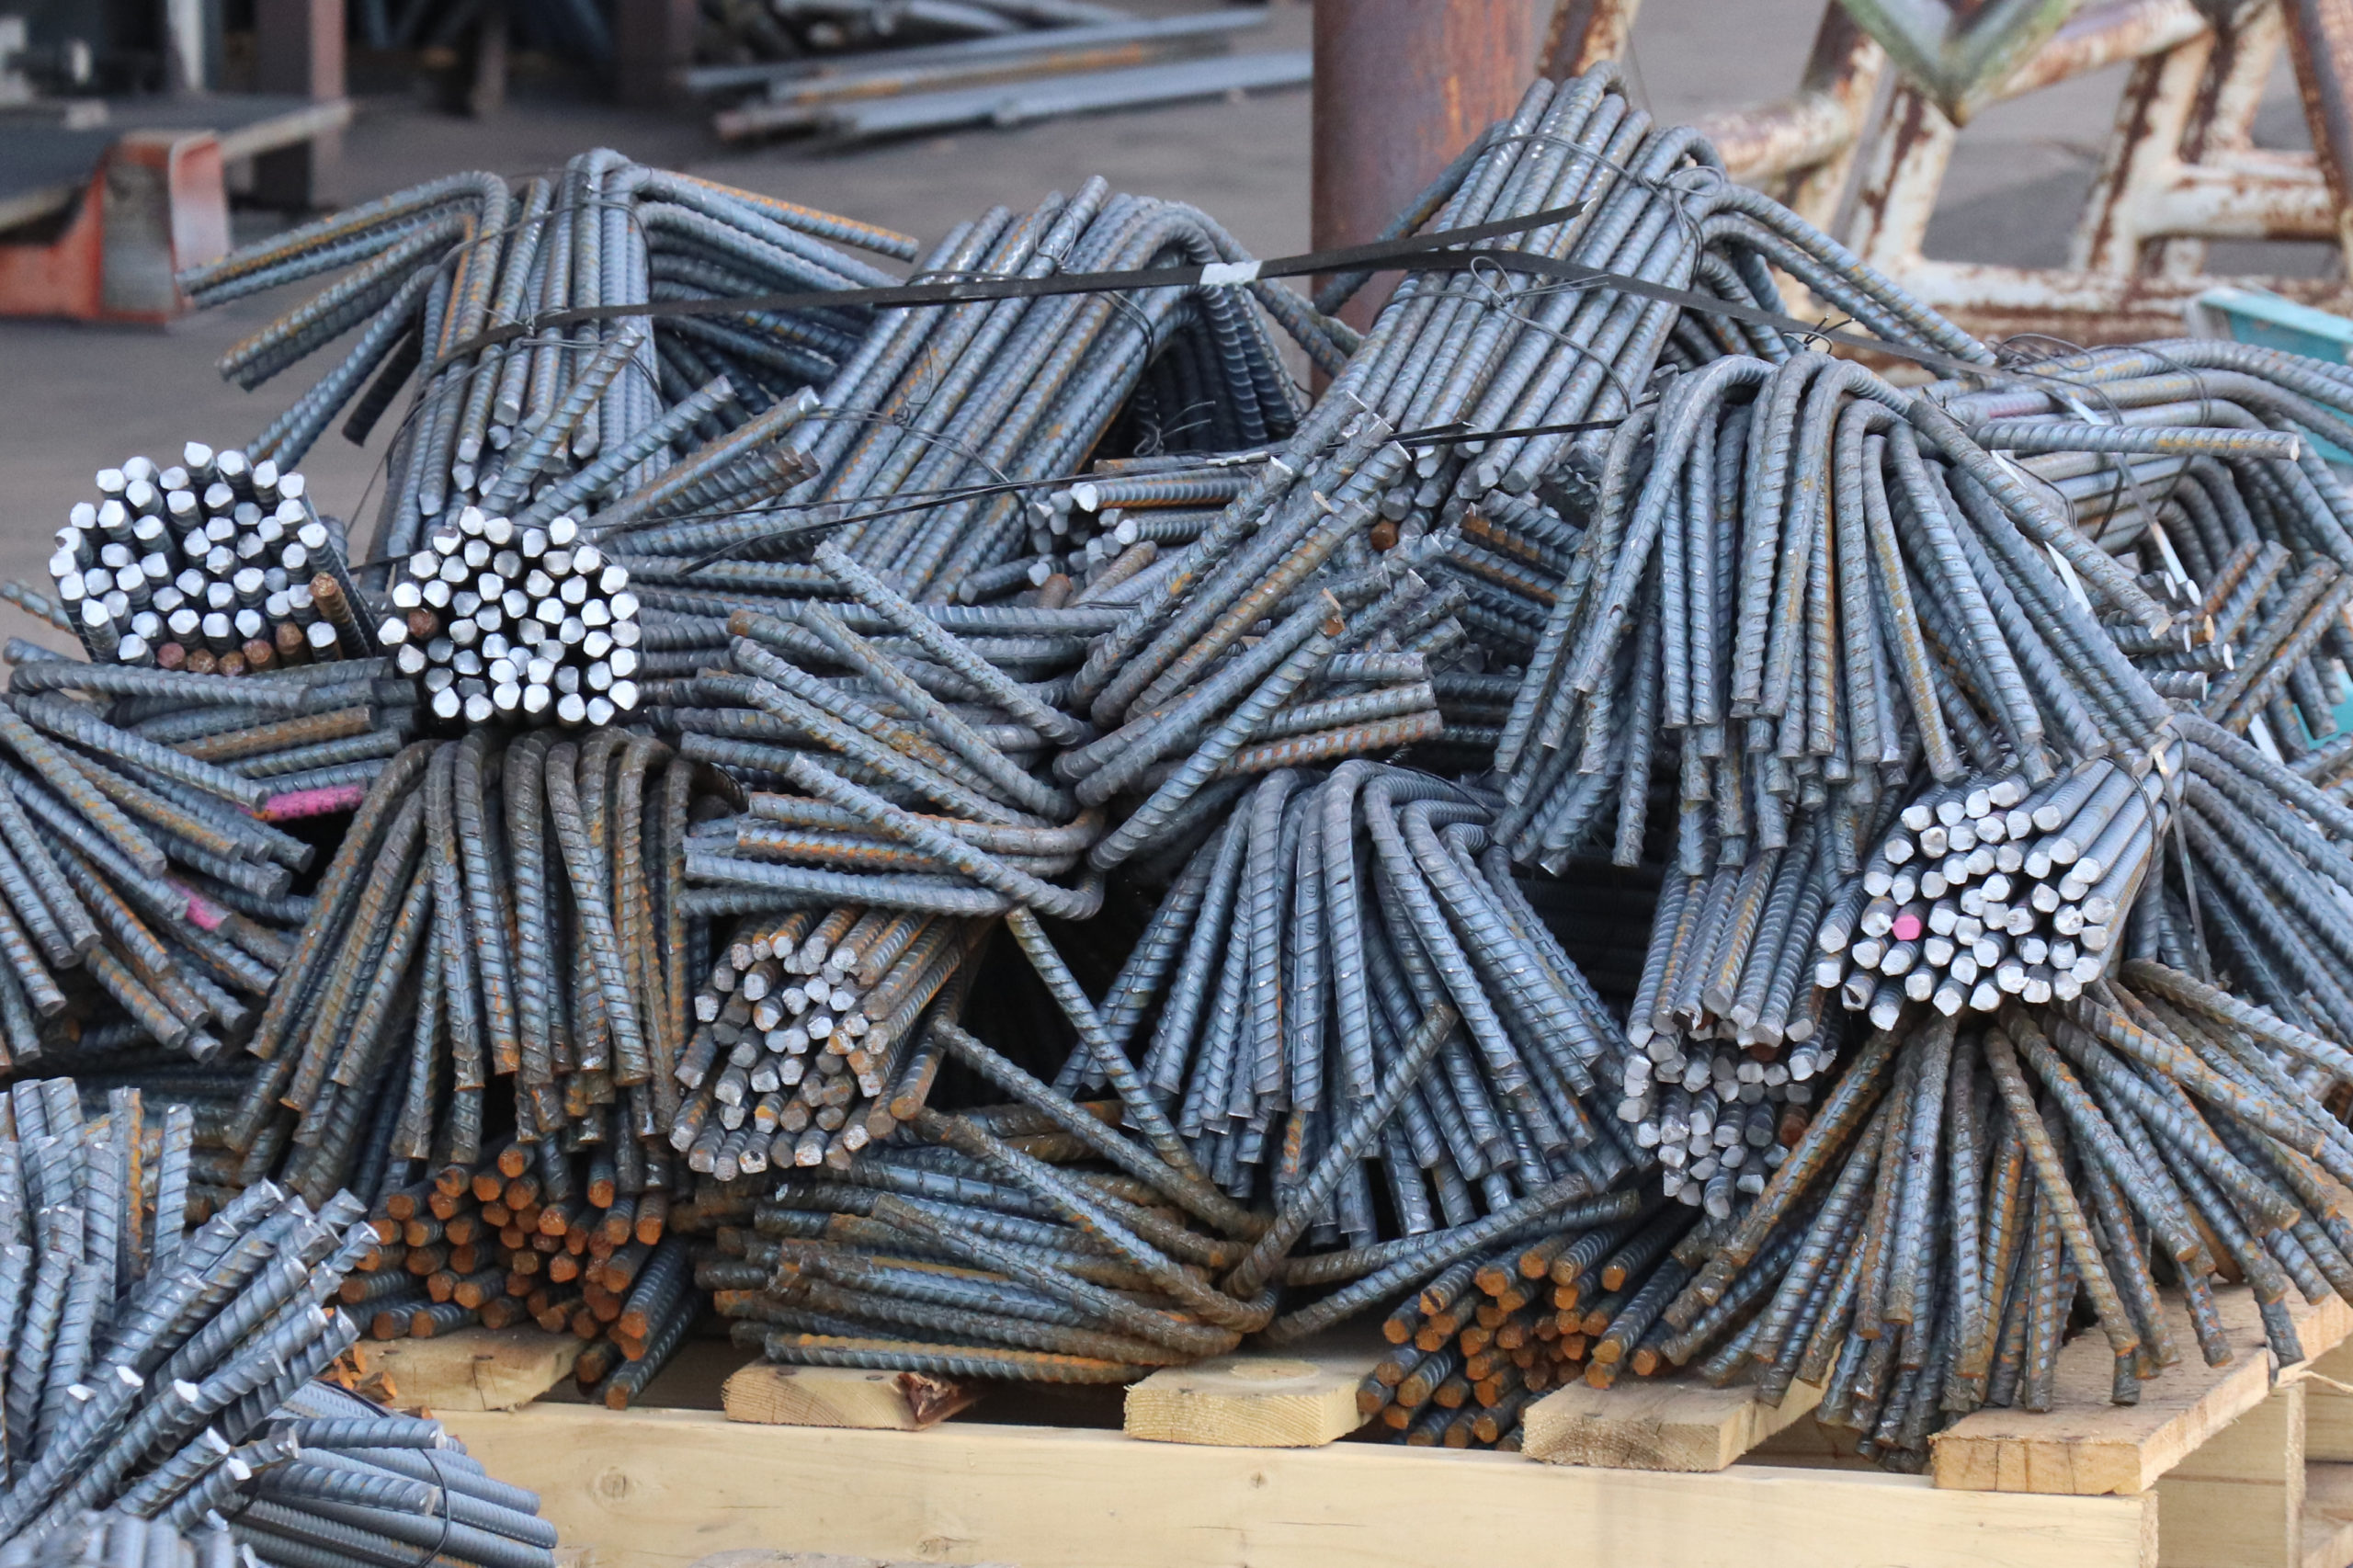 images of different types of rebar for fabrication